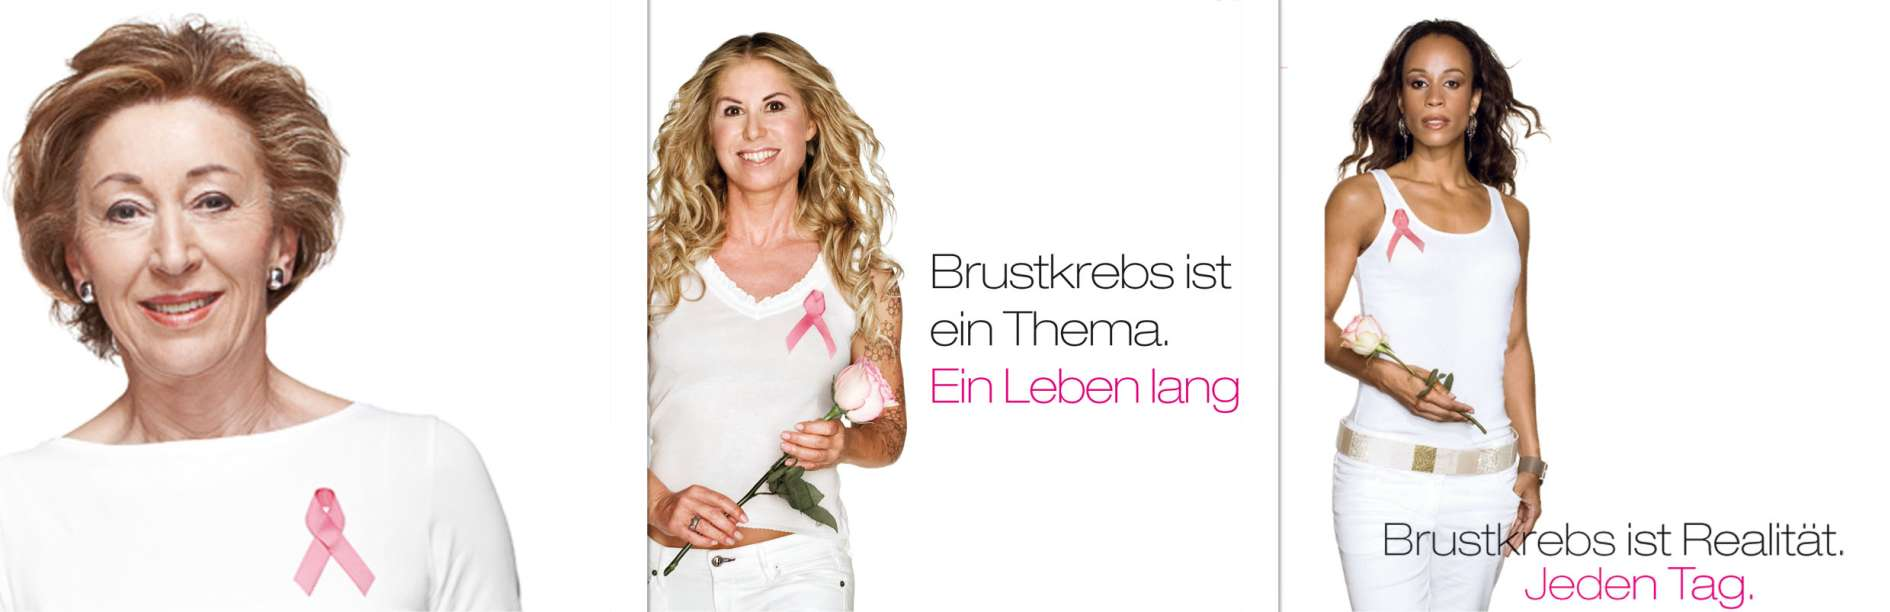 Brustkrebs-Kampagne